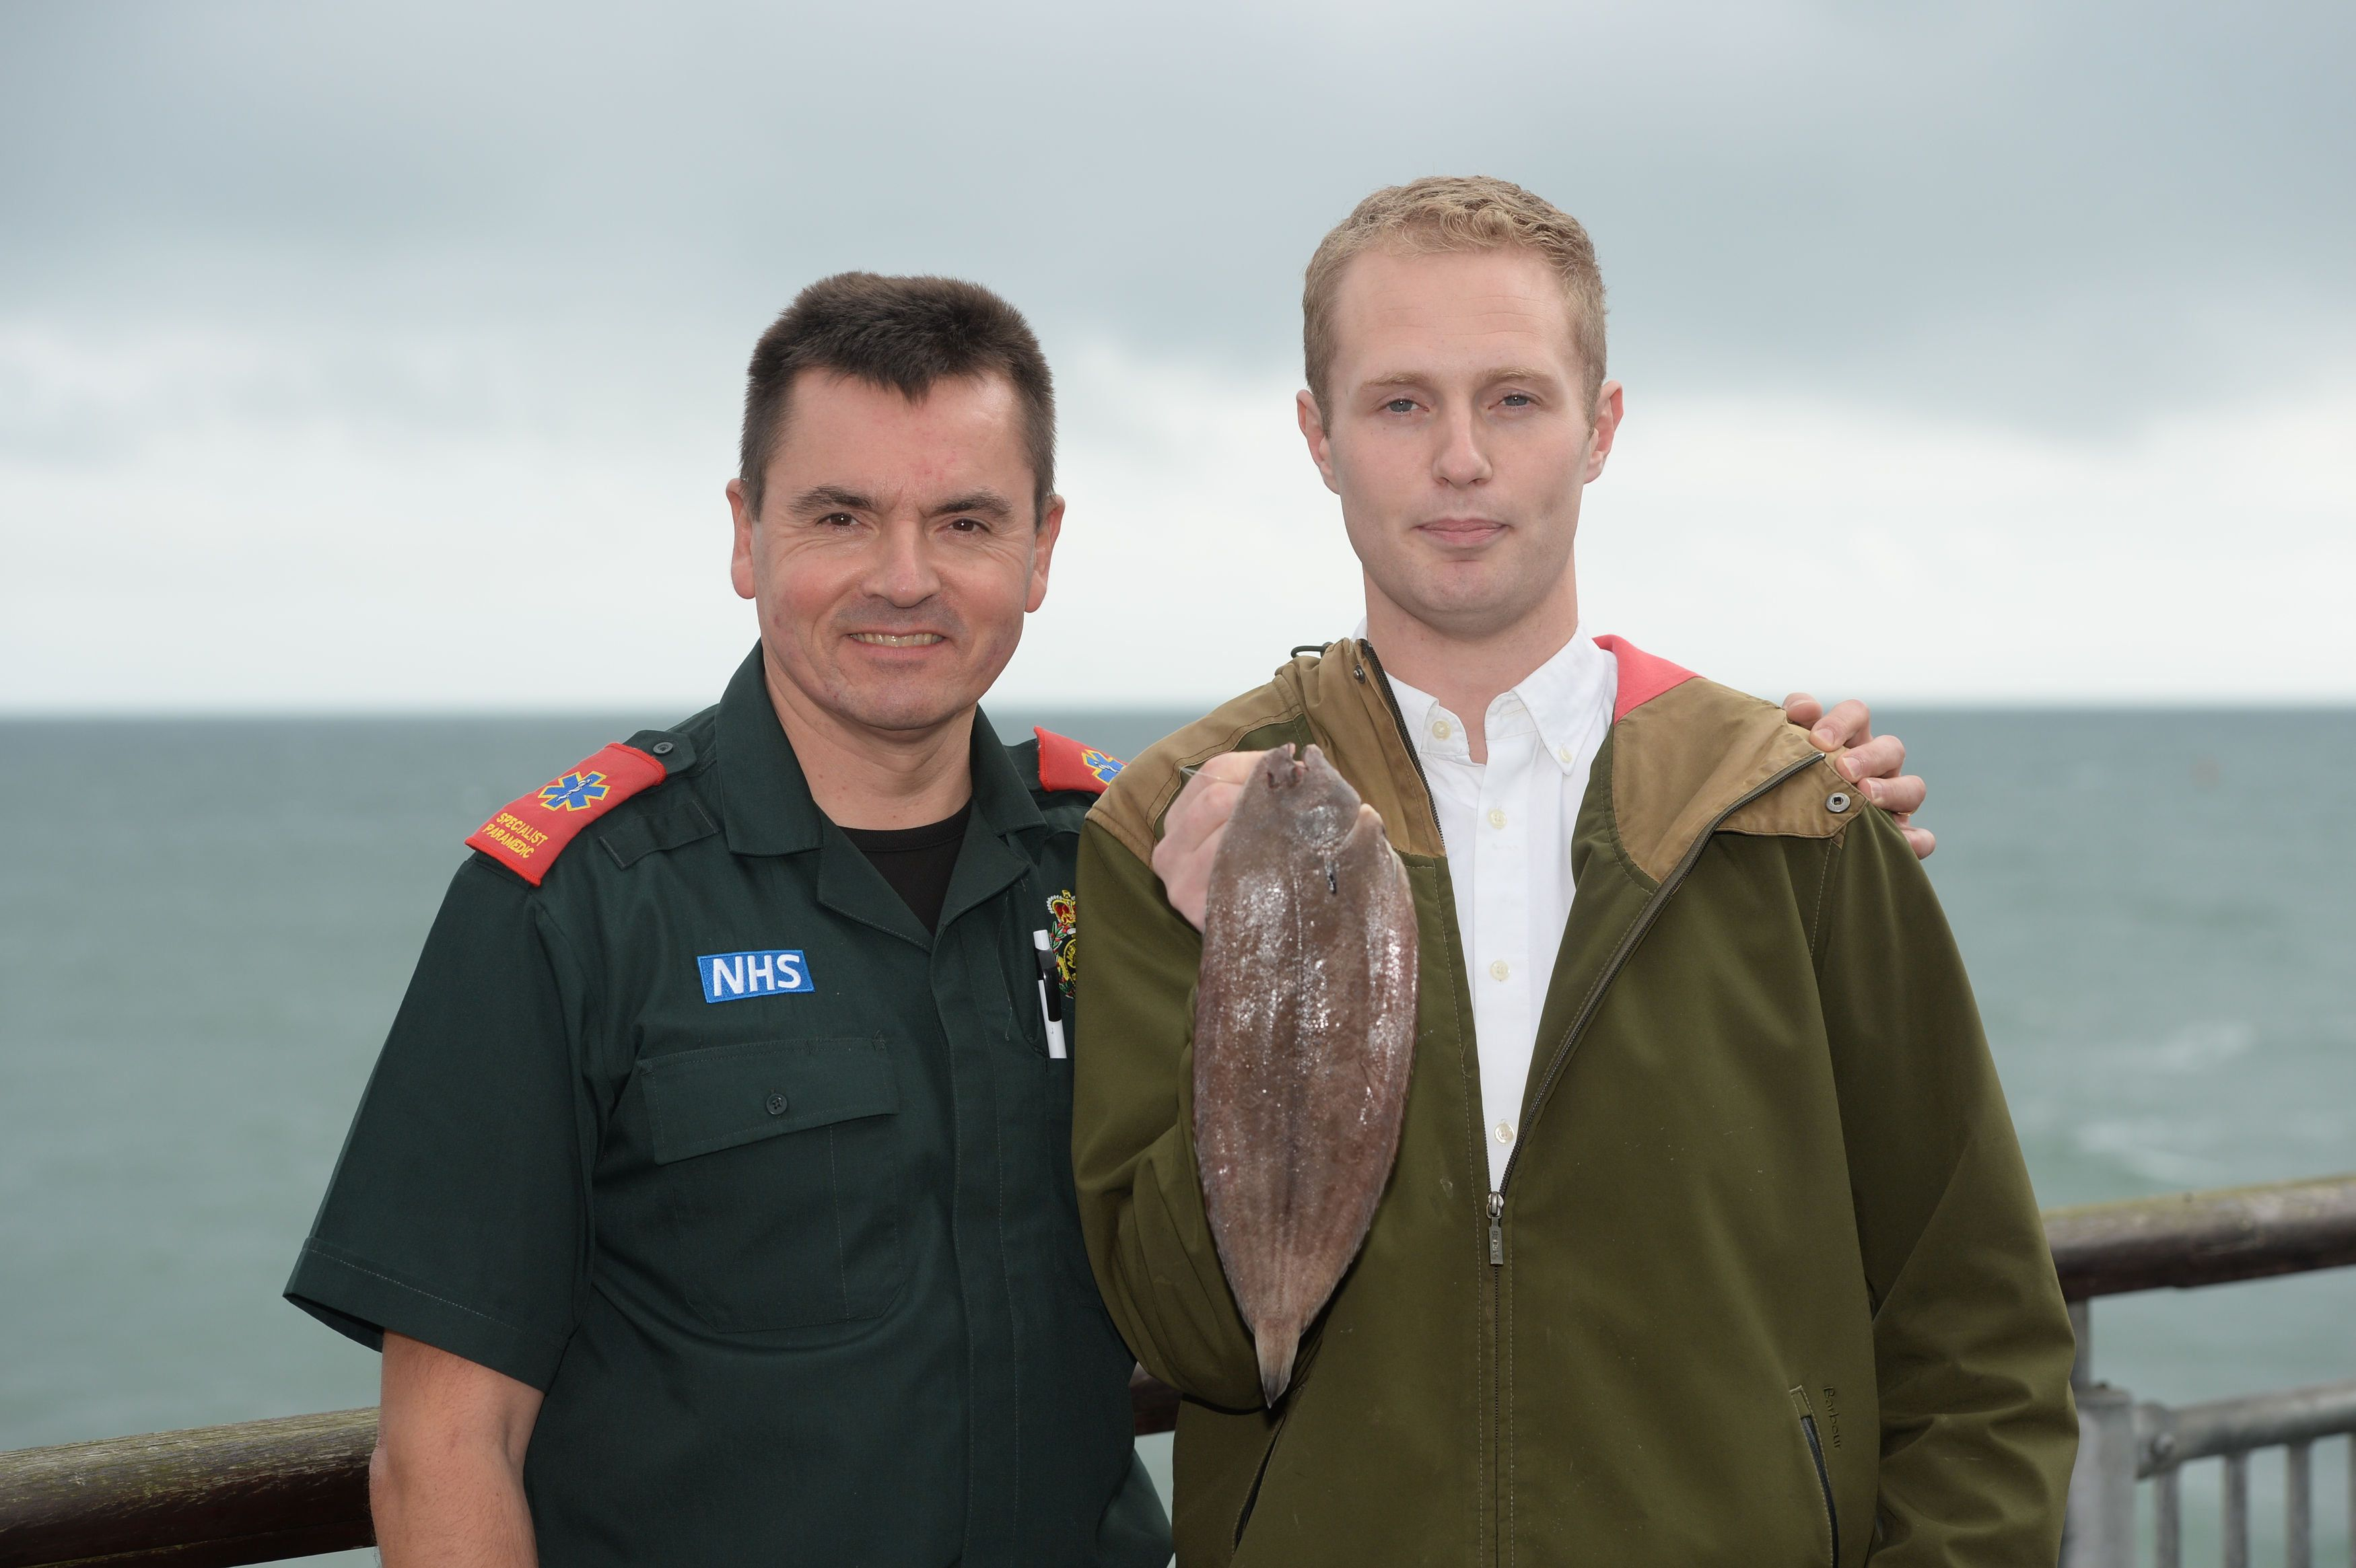 Angler Who Almost Choked To Death On Dover Sole Will 'Probably' Kiss More